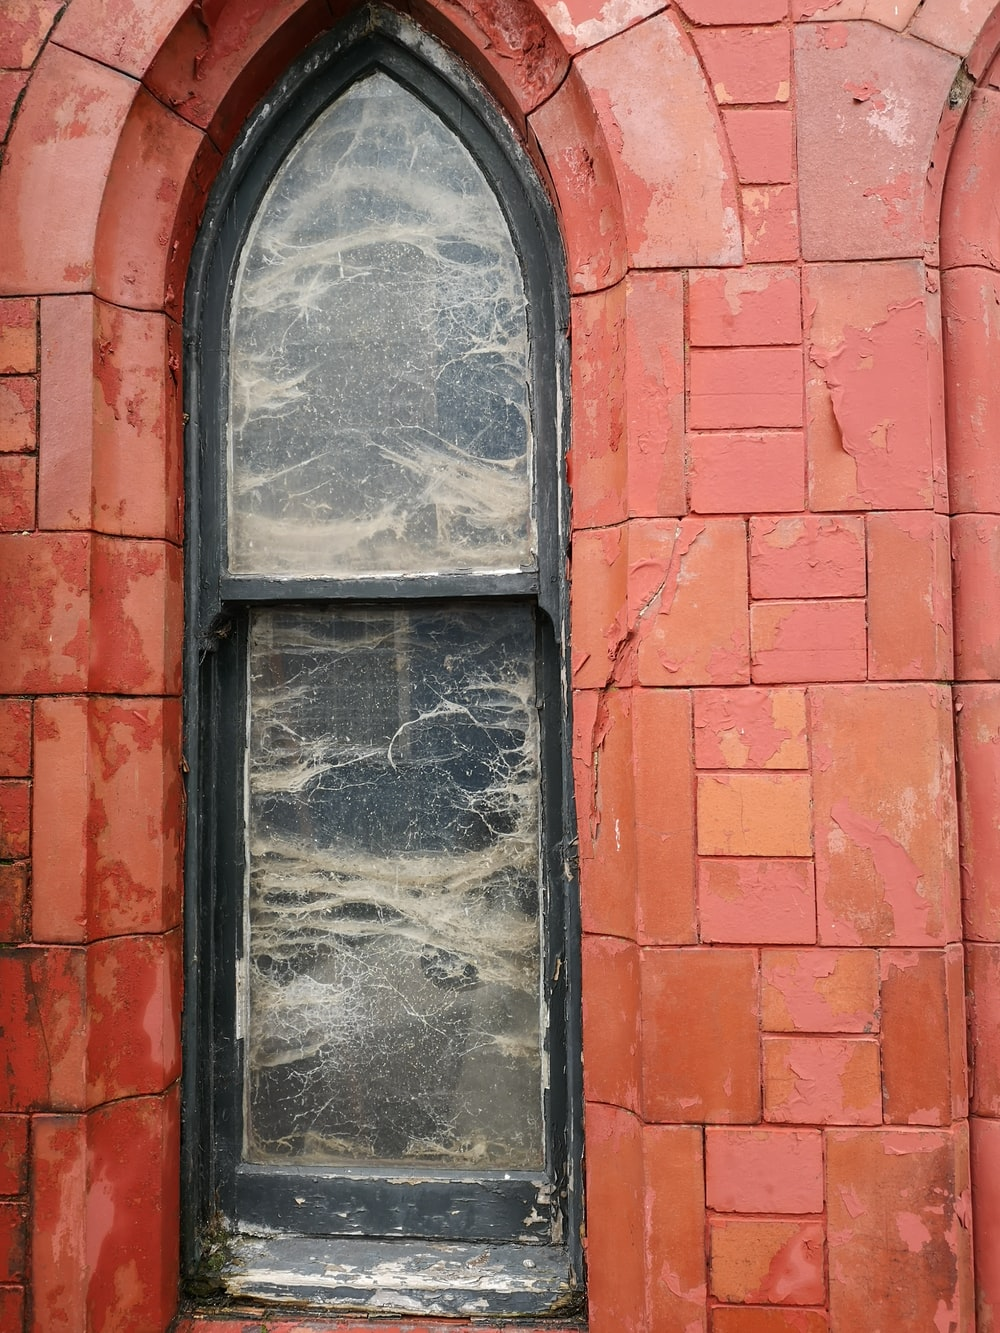 black wooden window frame on red brick wall